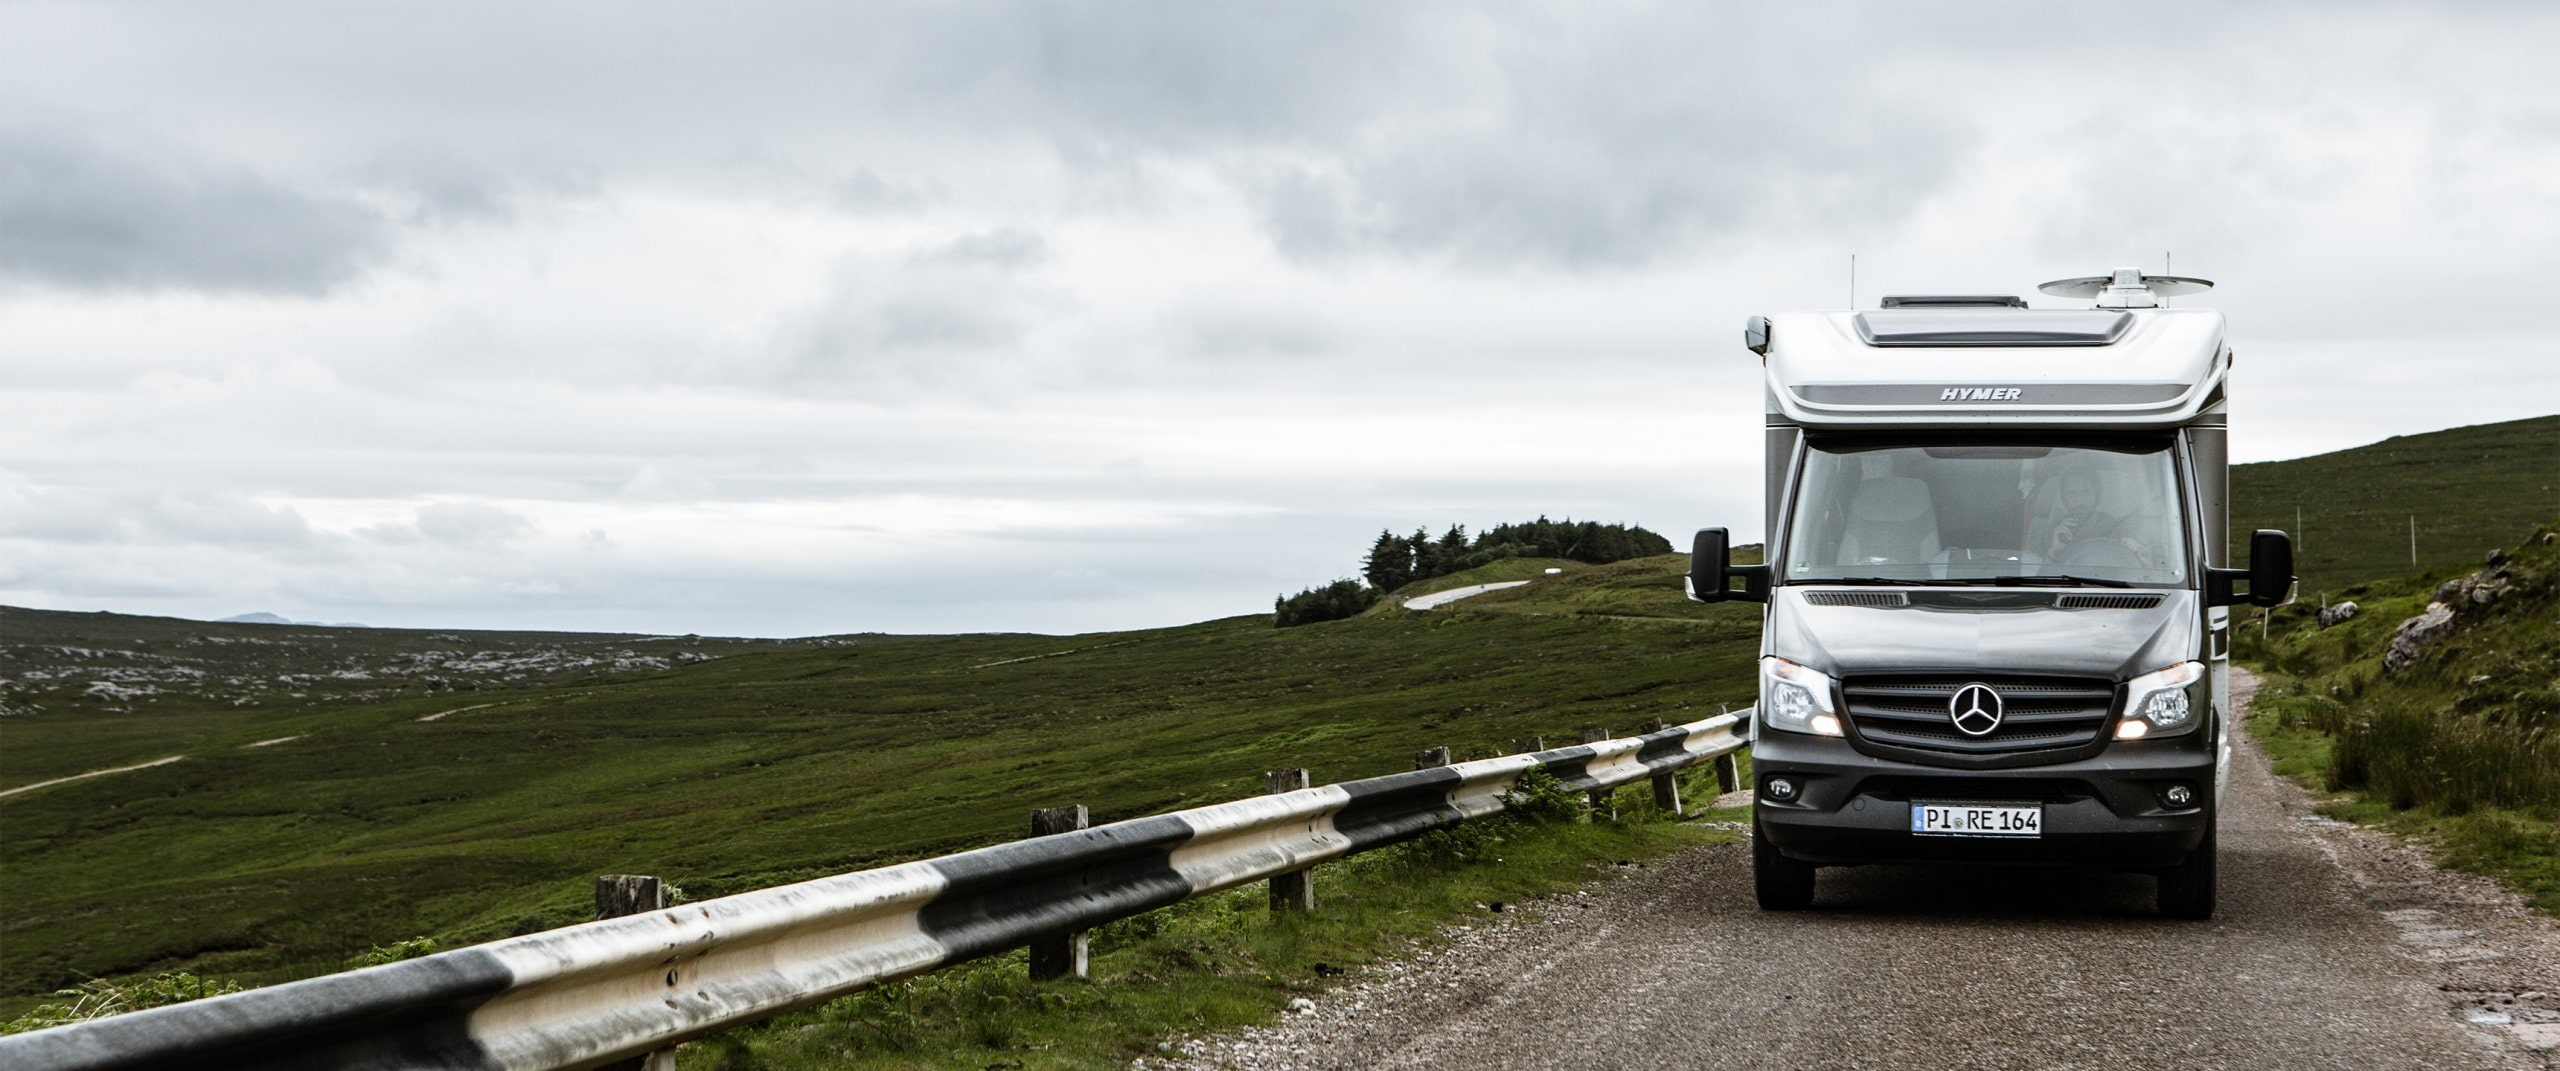 The Hymer motorhome with a Sprinter chassis drives through the green and hilly landscape of Scotland.